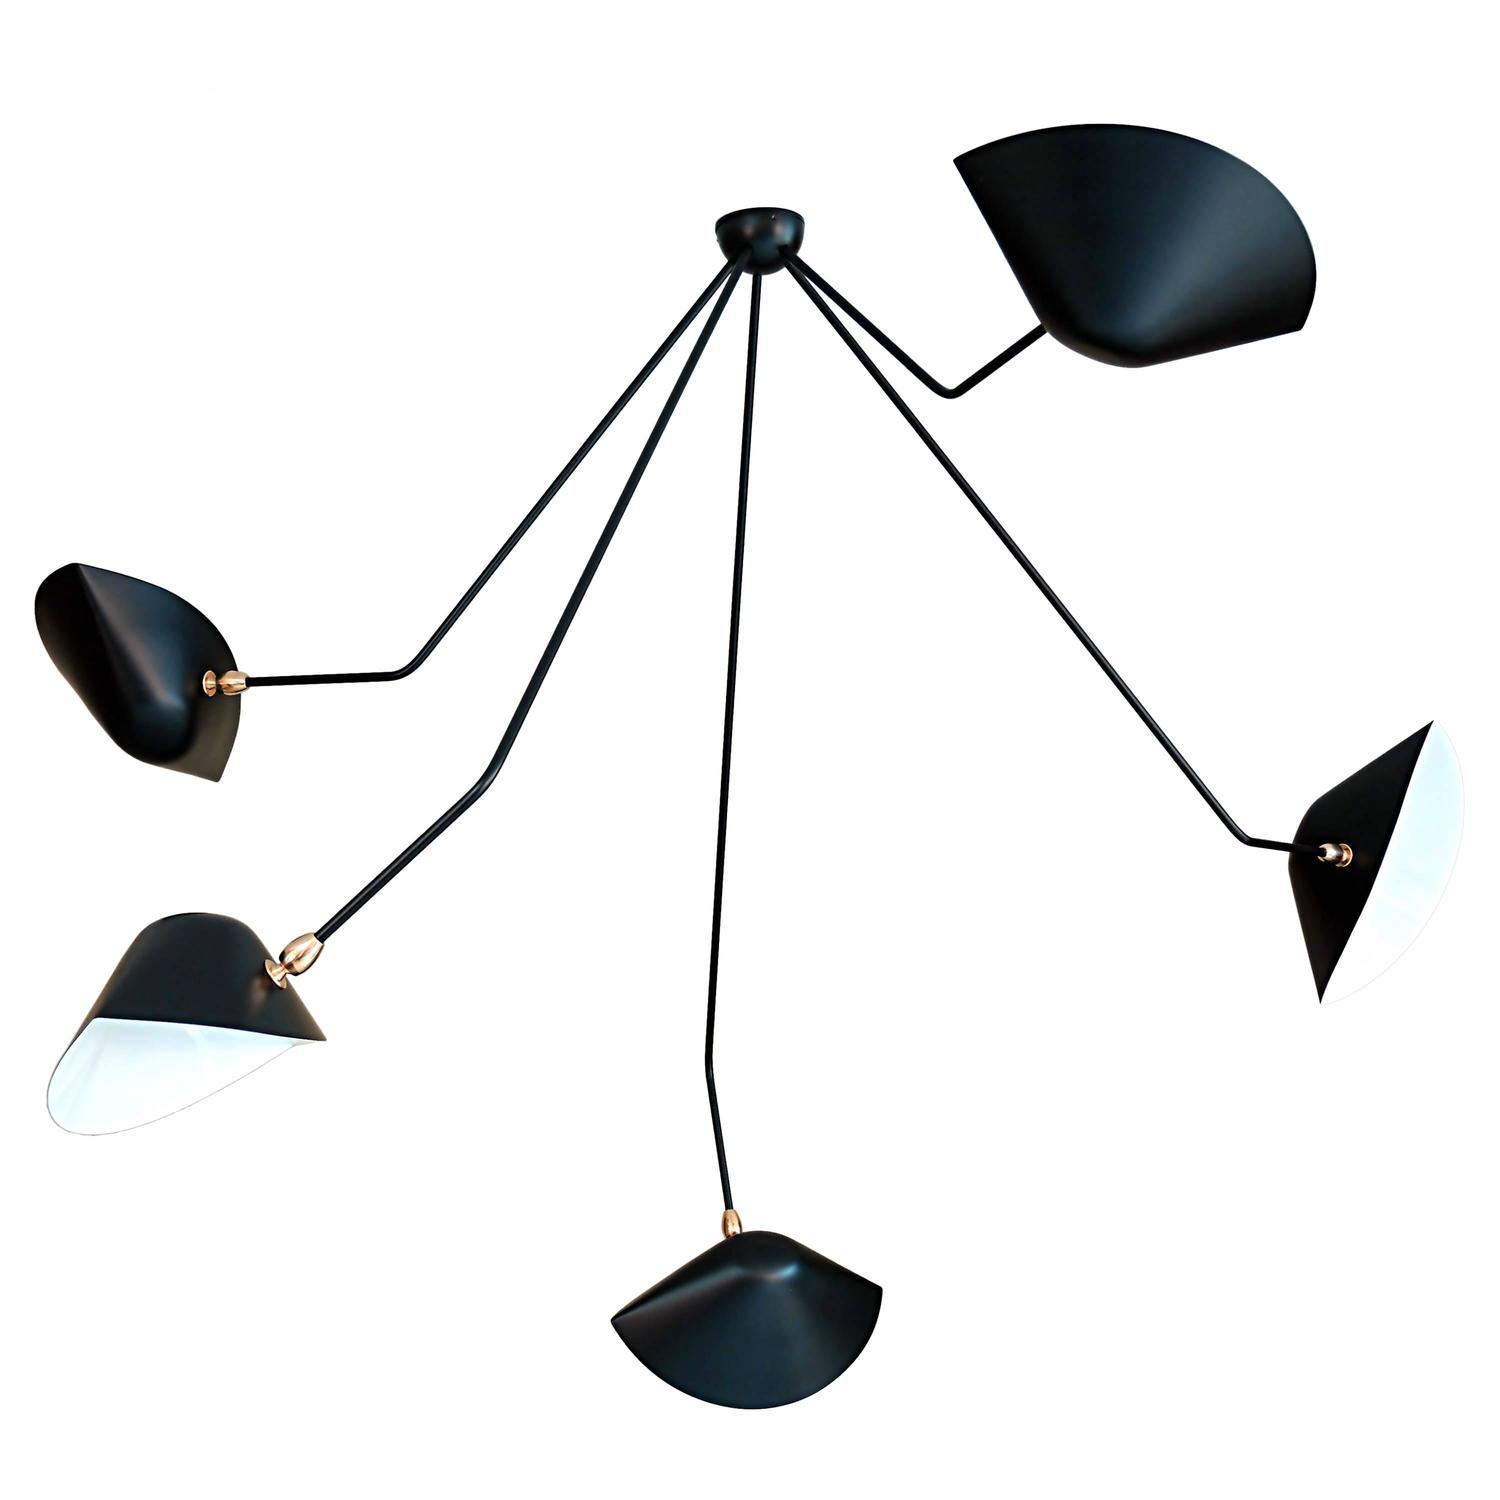 Falling Arm Ceiling Lamp by Serge Mouille at 1stdibs